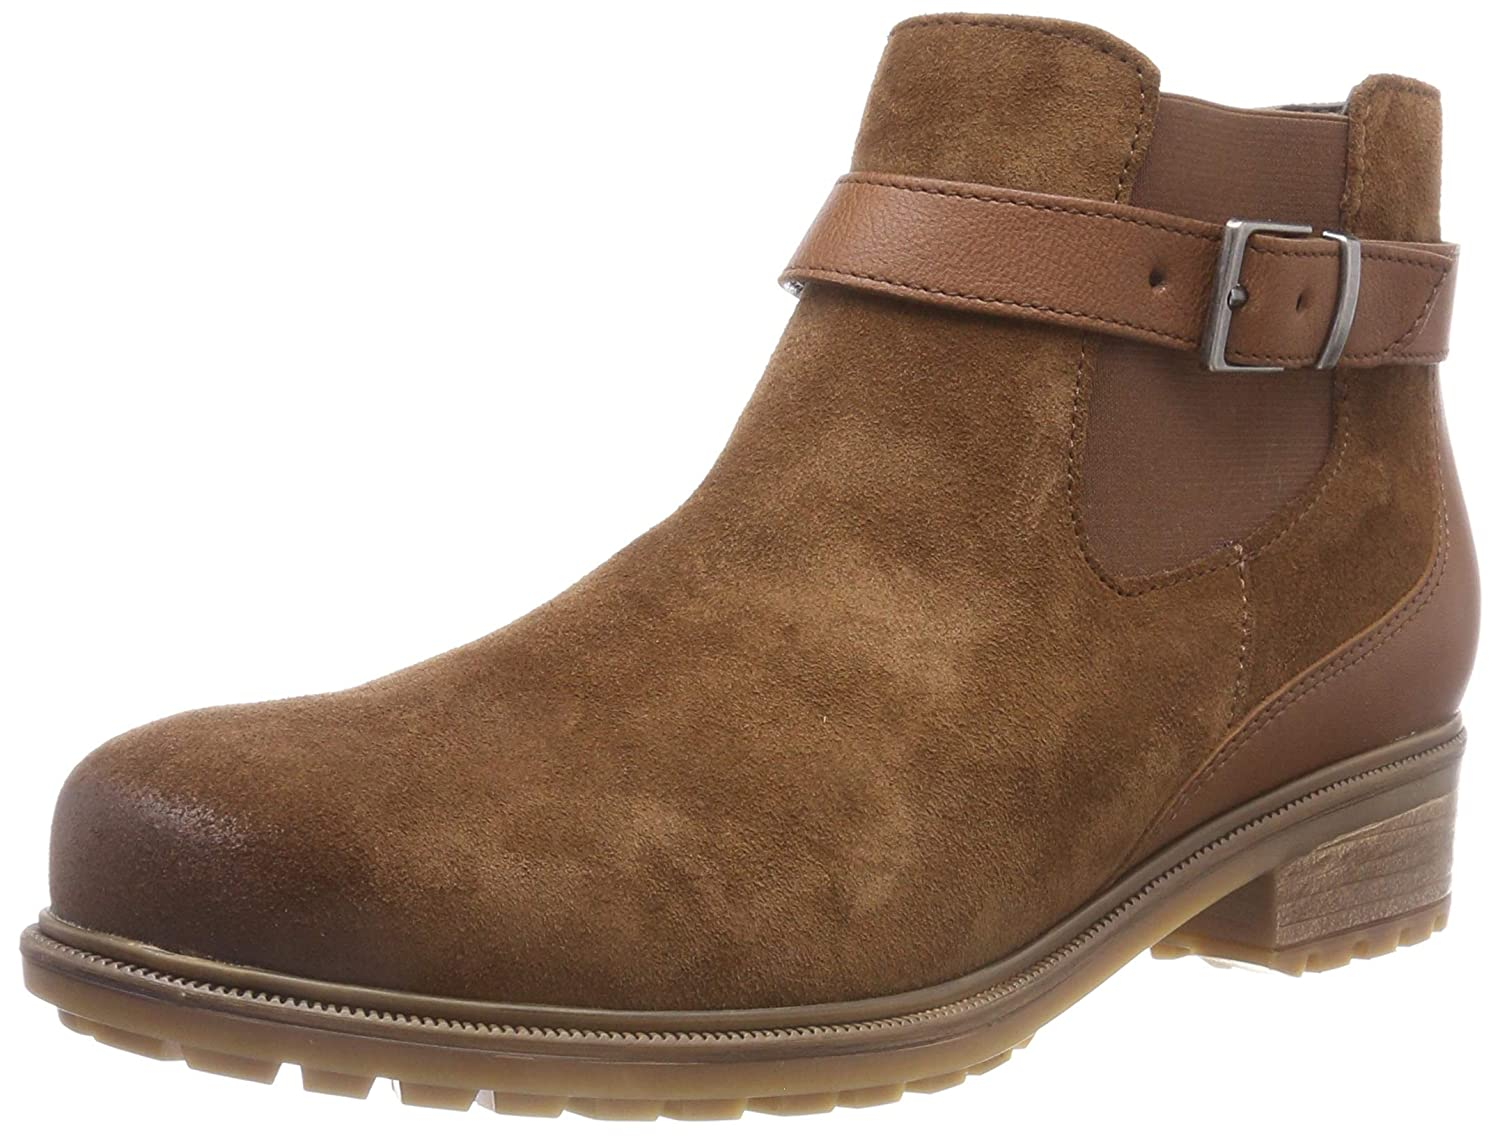 ara Kansas, Bottines Femme Bottines Marron (Setter,cognac (Setter,cognac Marron 68) 56cd18a - boatplans.space